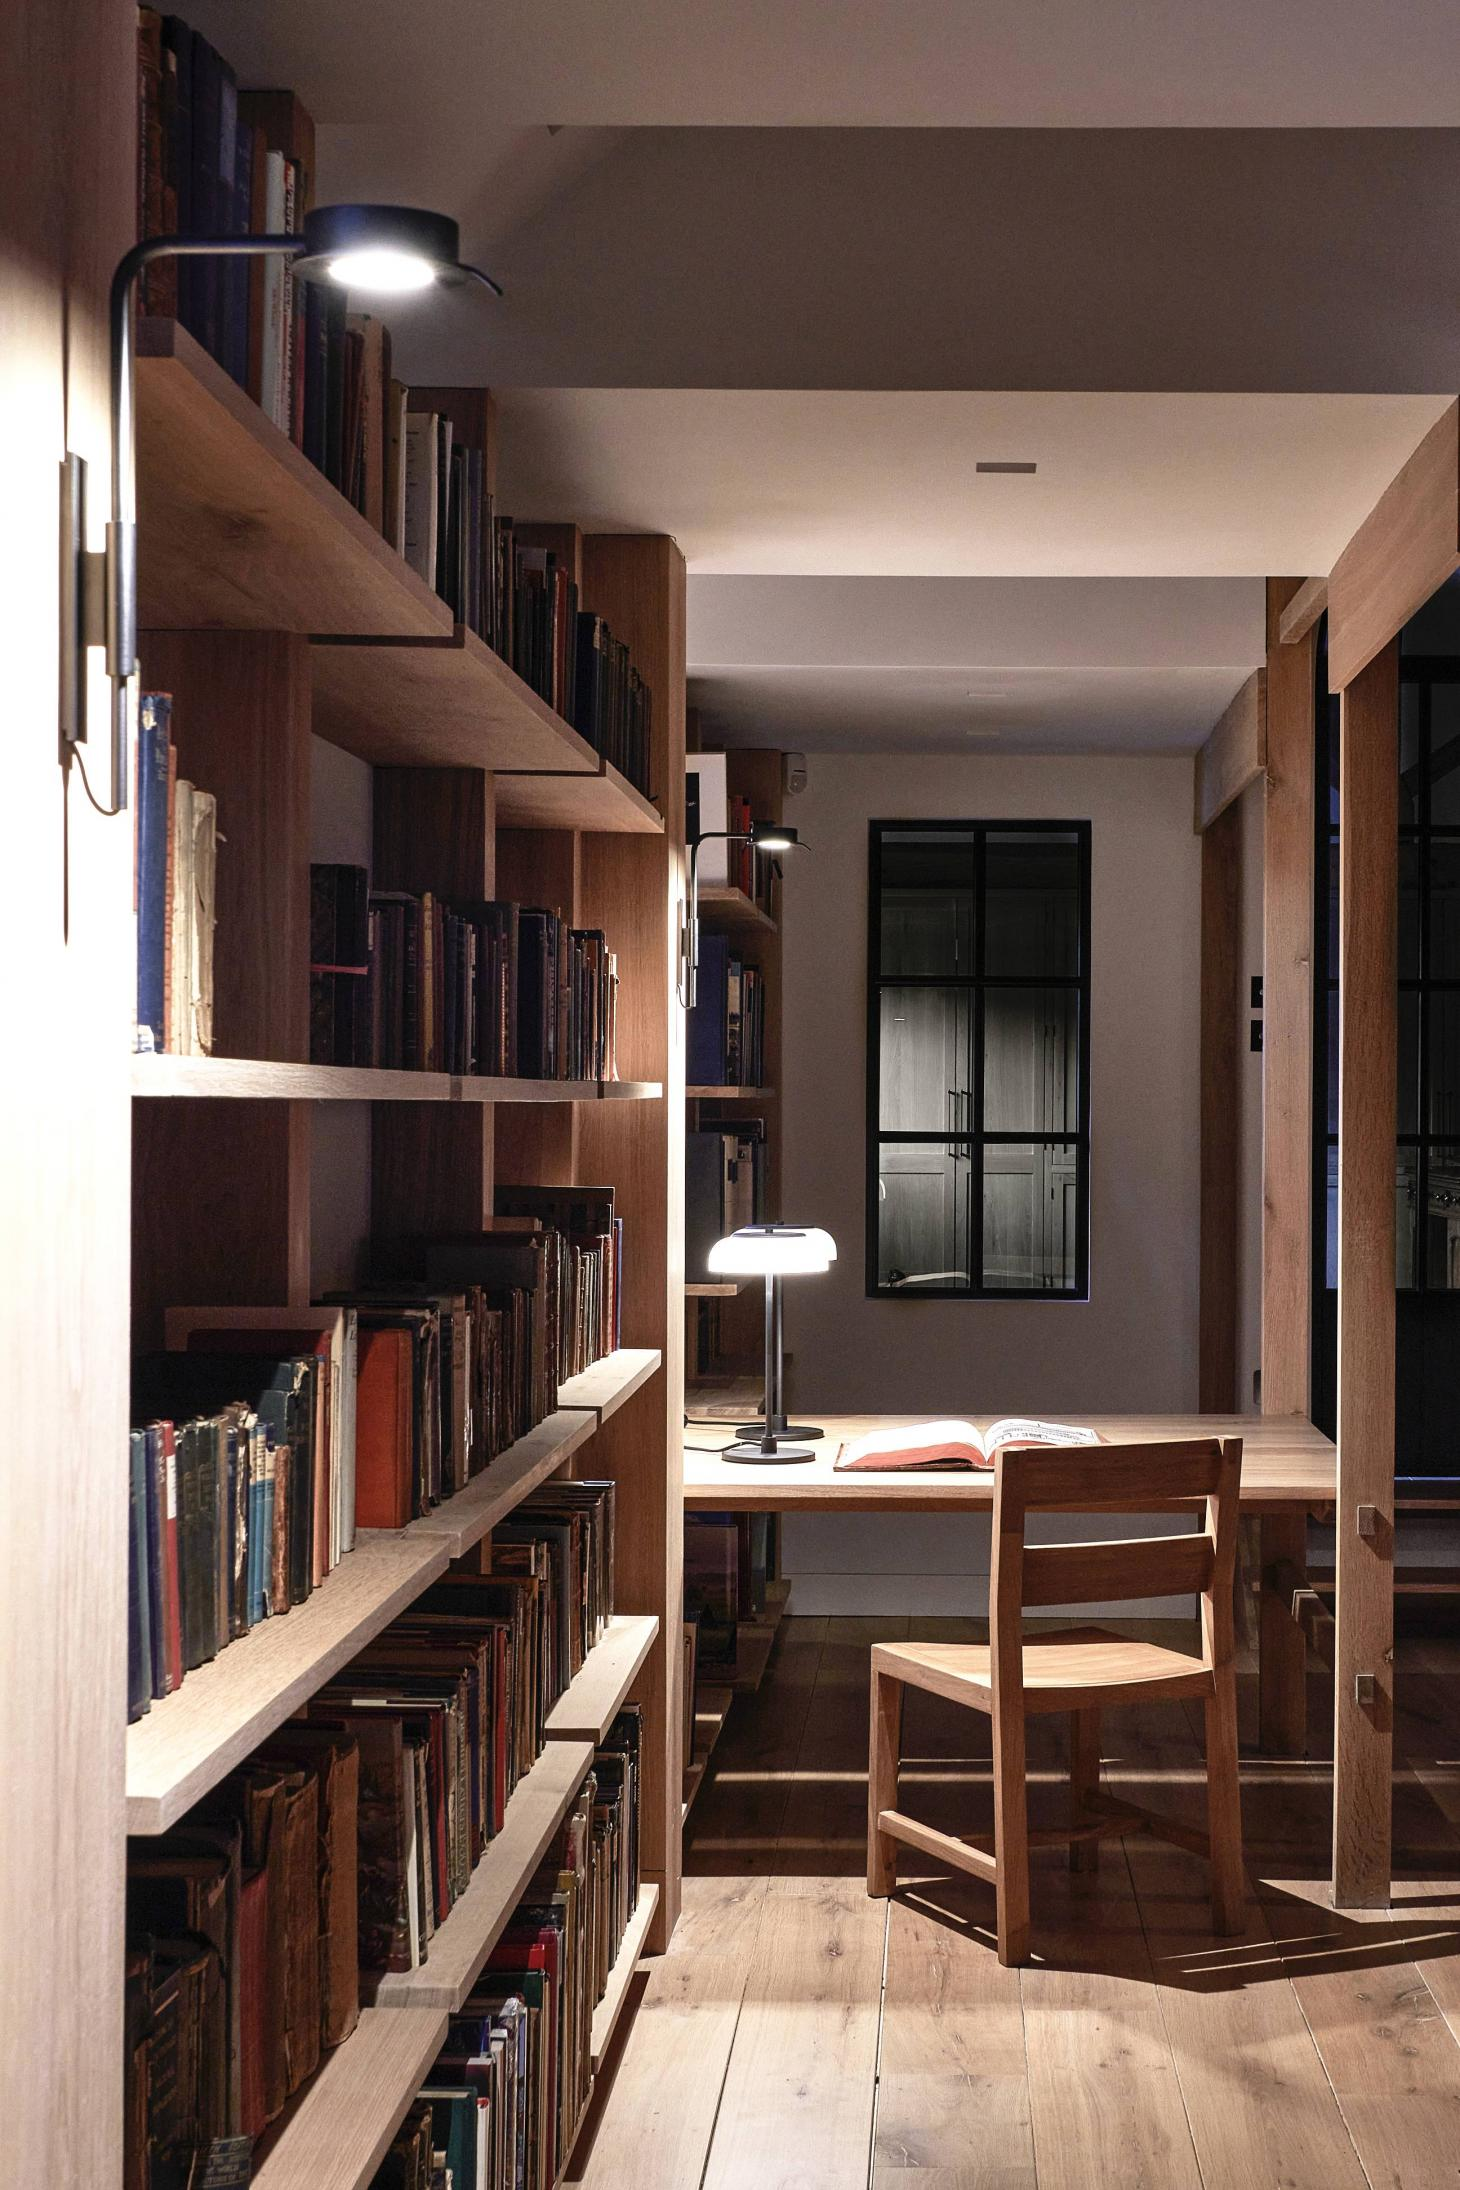 study space in Dorset library in renovated cowshed